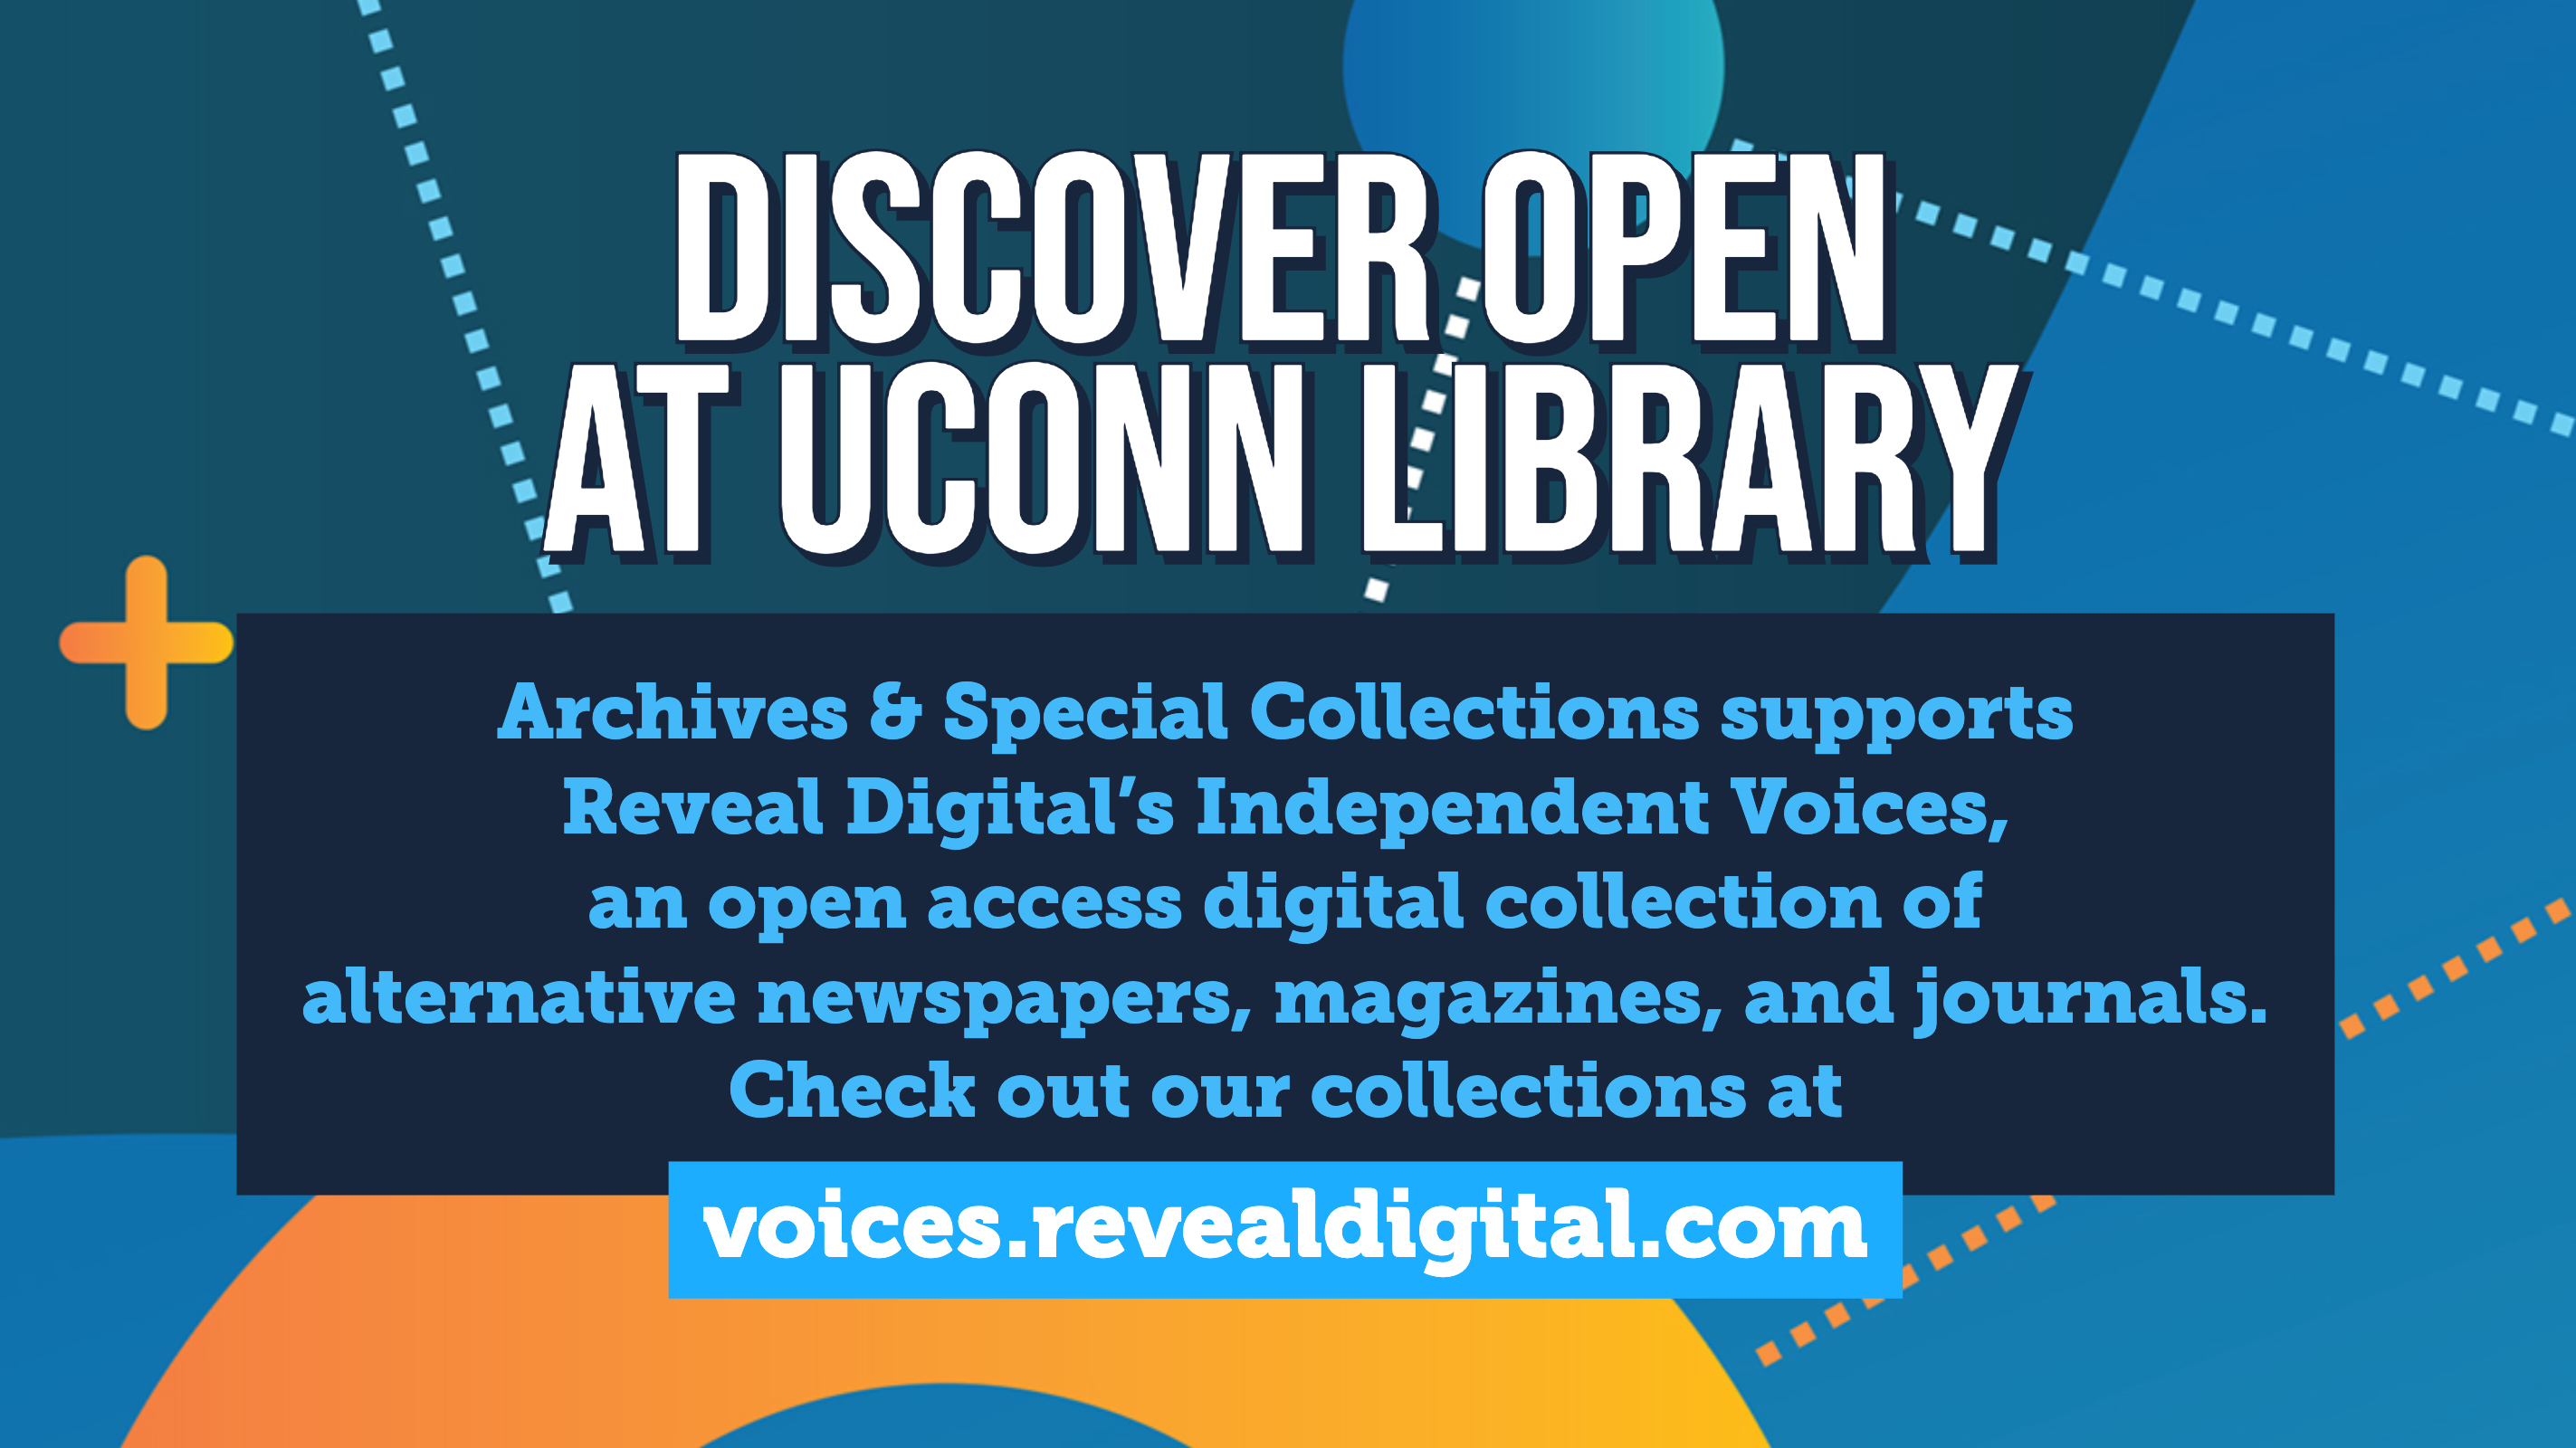 Discover Open at UConn Library Archives & Special Collections has over 1200 open primary source collections for research, teaching, and creative use. Explore them at archivessearch.lib.uconn.edu & ctdigitalarchive.org